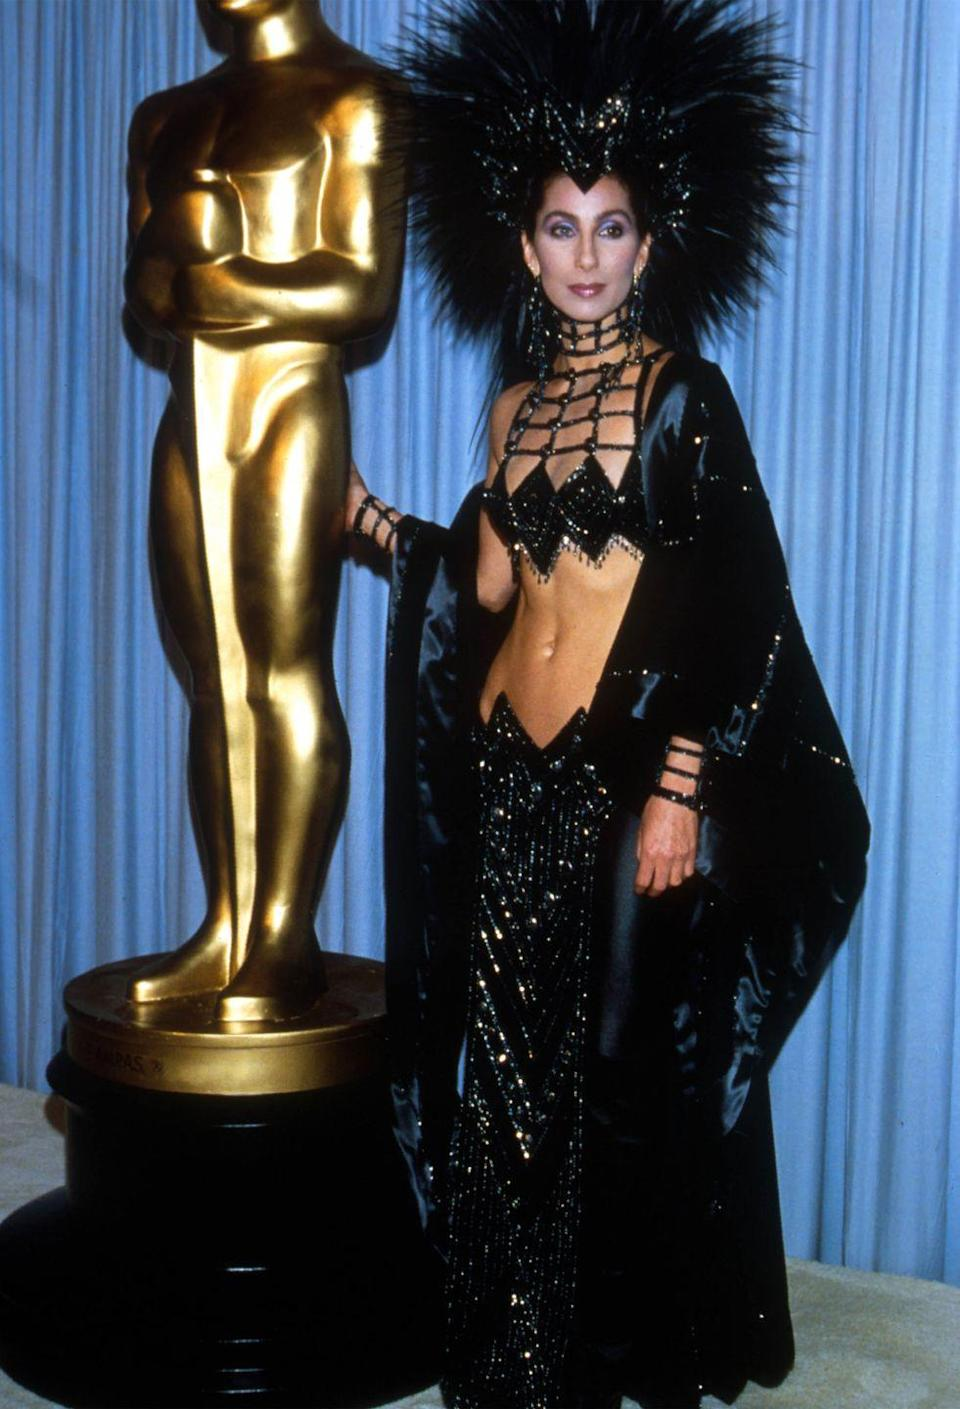 <p>For one of her most memorable and iconic red carpet looks of all time, Cher wore a sparkling showgirl-inspired two-piece set and towering headpiece by Bob Mackie to the Oscars because the Academy didn't take her as a serious actress. </p>